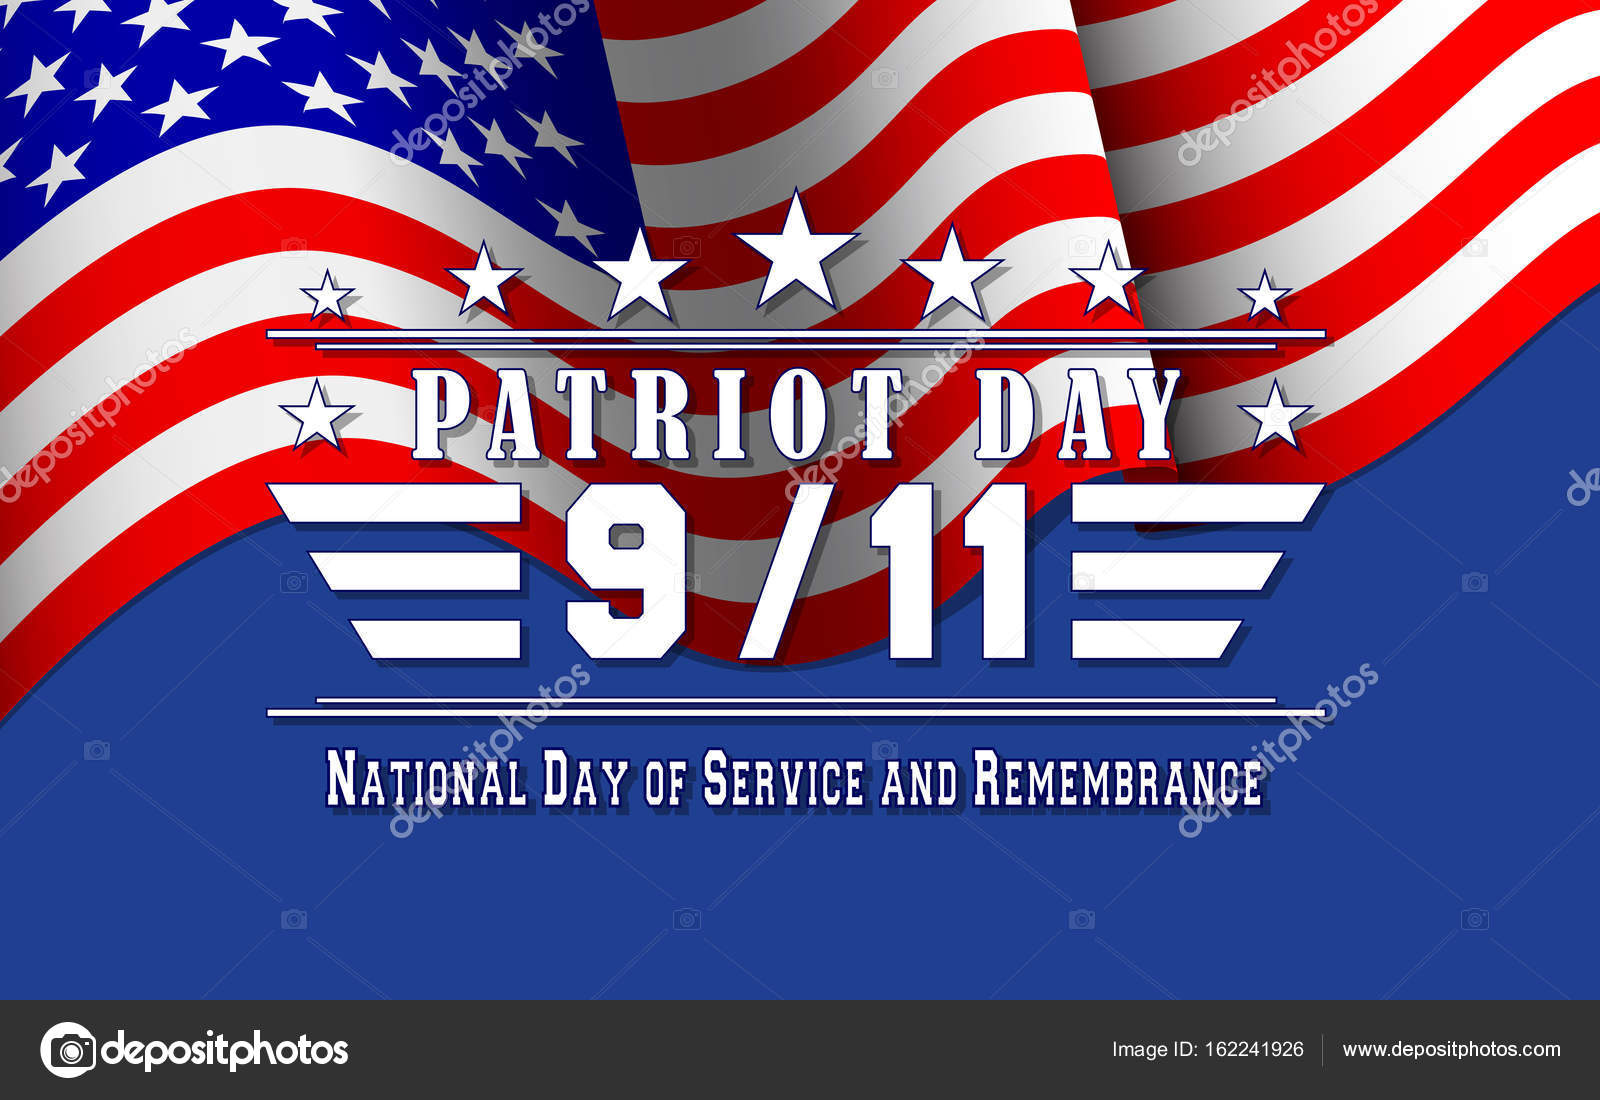 vector patriot day background with us flag and lettering template